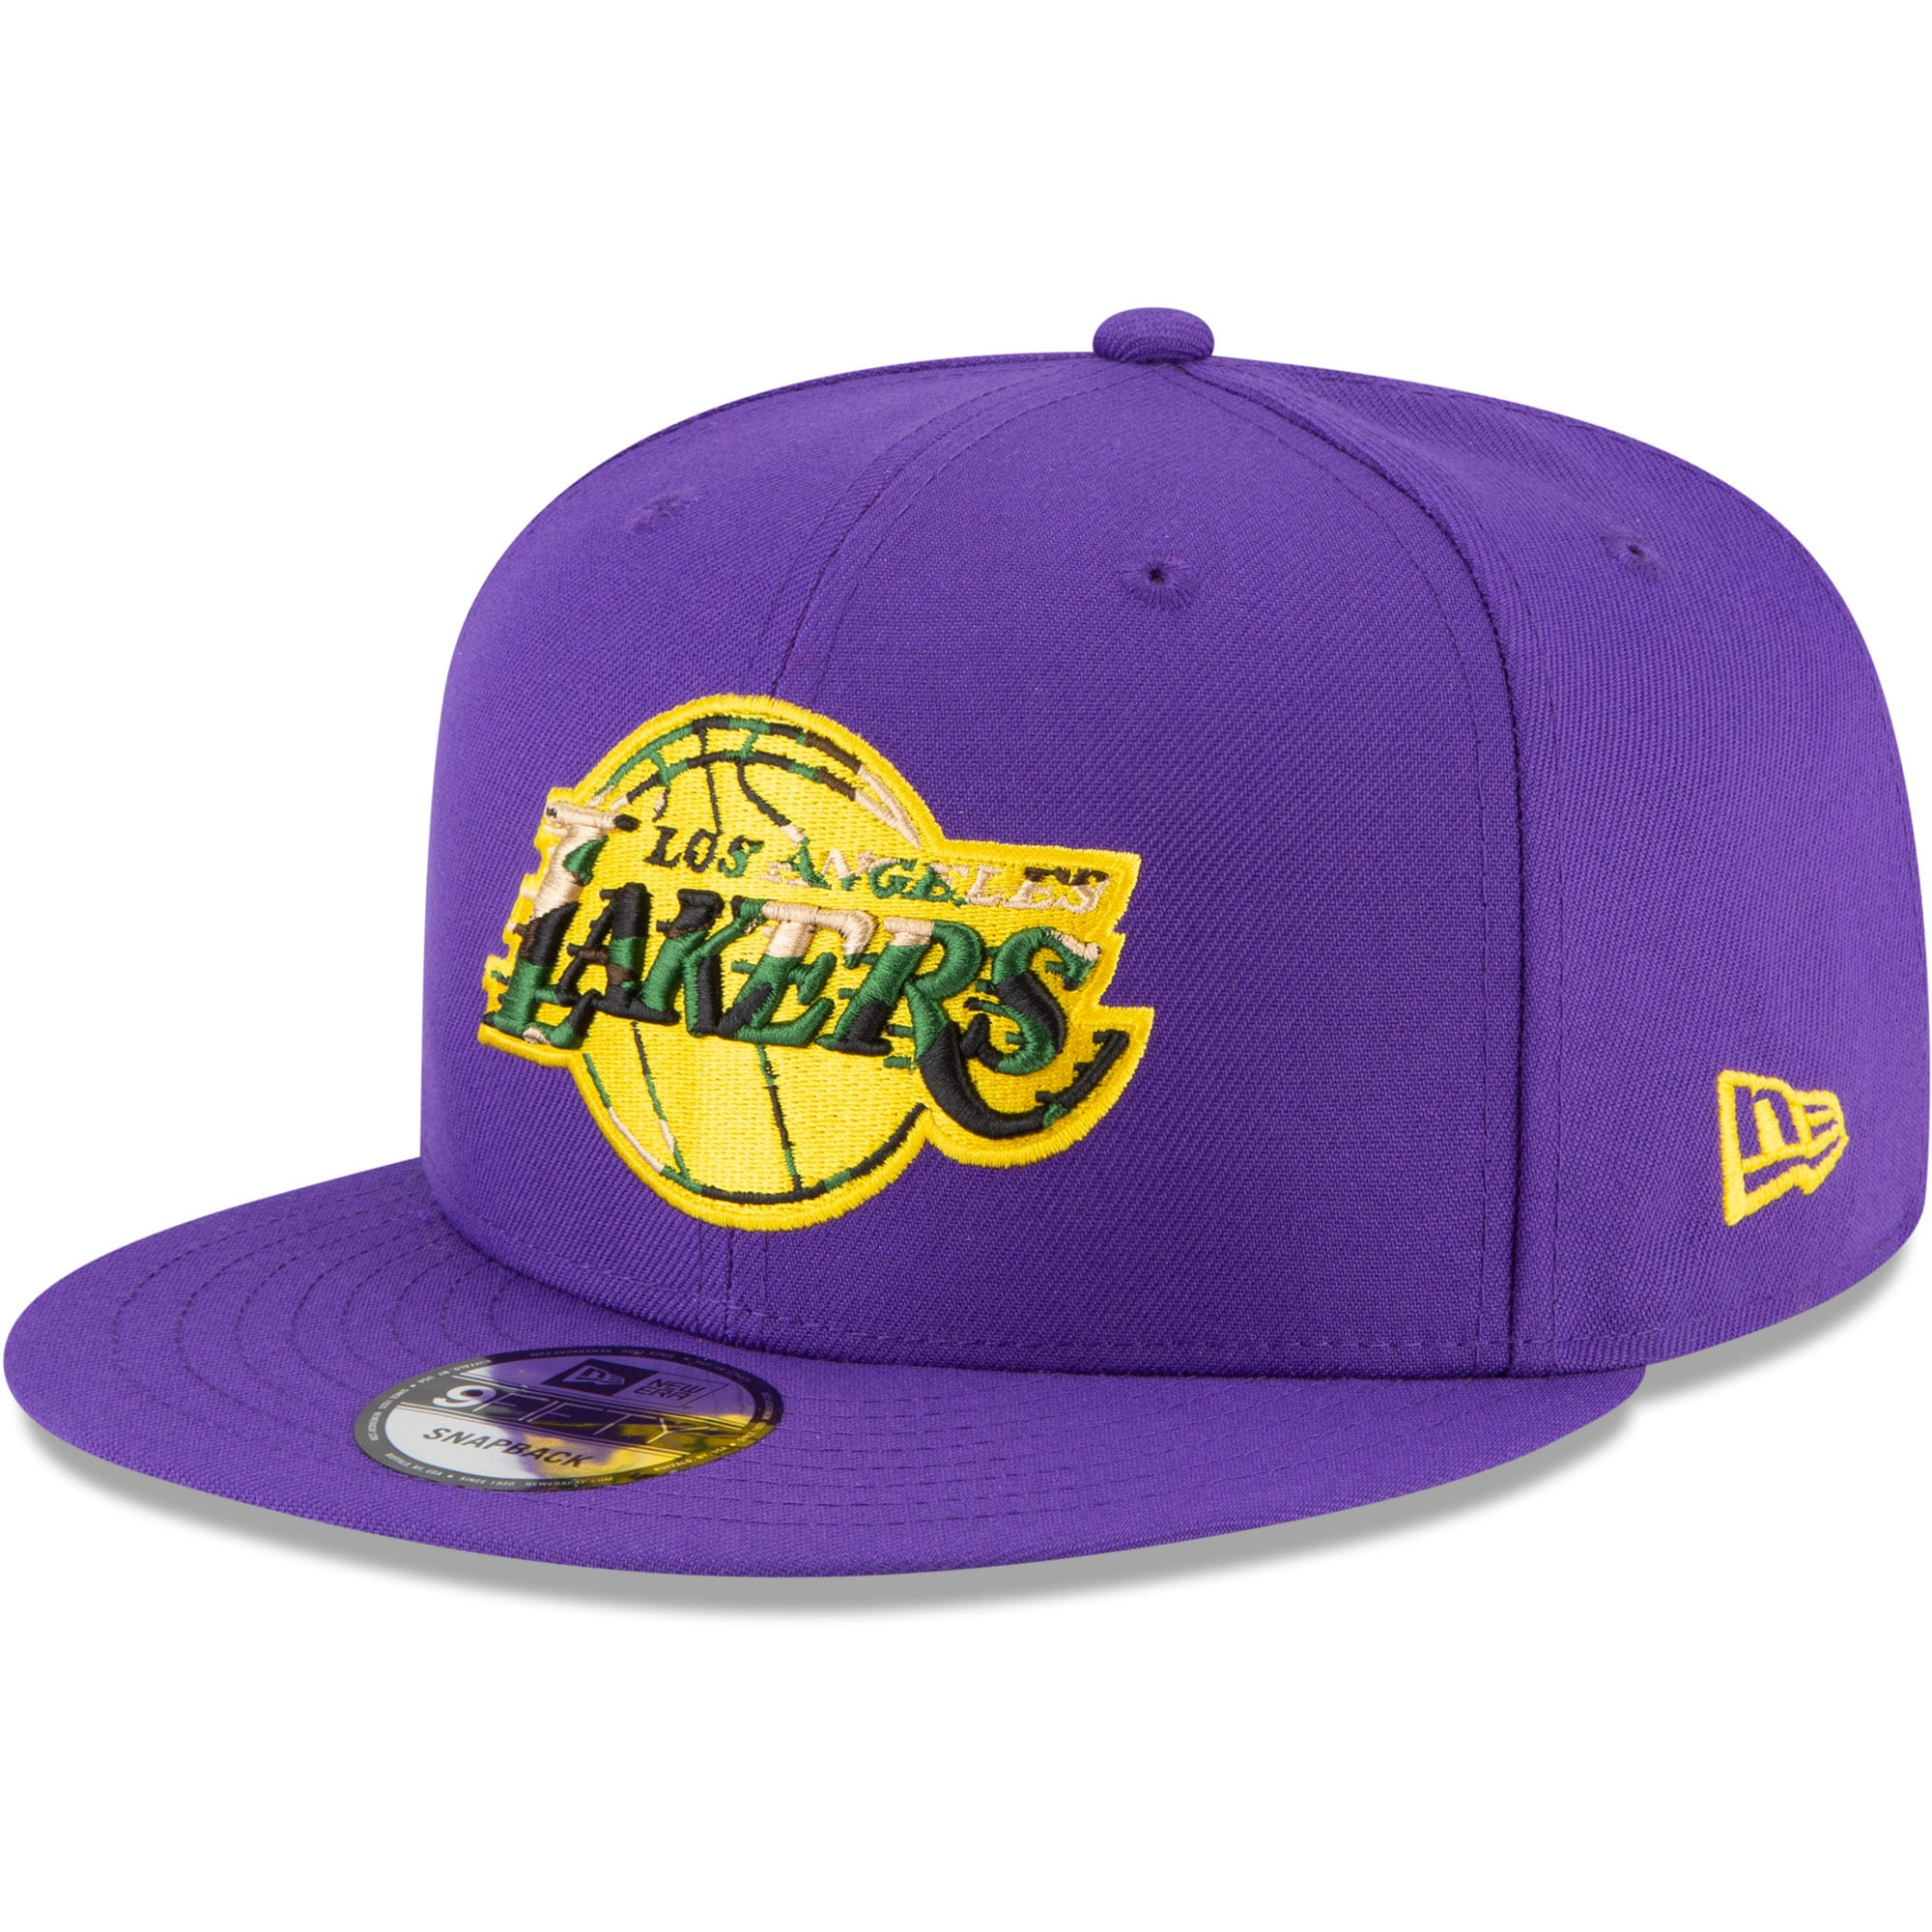 Los Angeles Lakers New Era Extreme 9FIFTY Snapback Hat - Purple